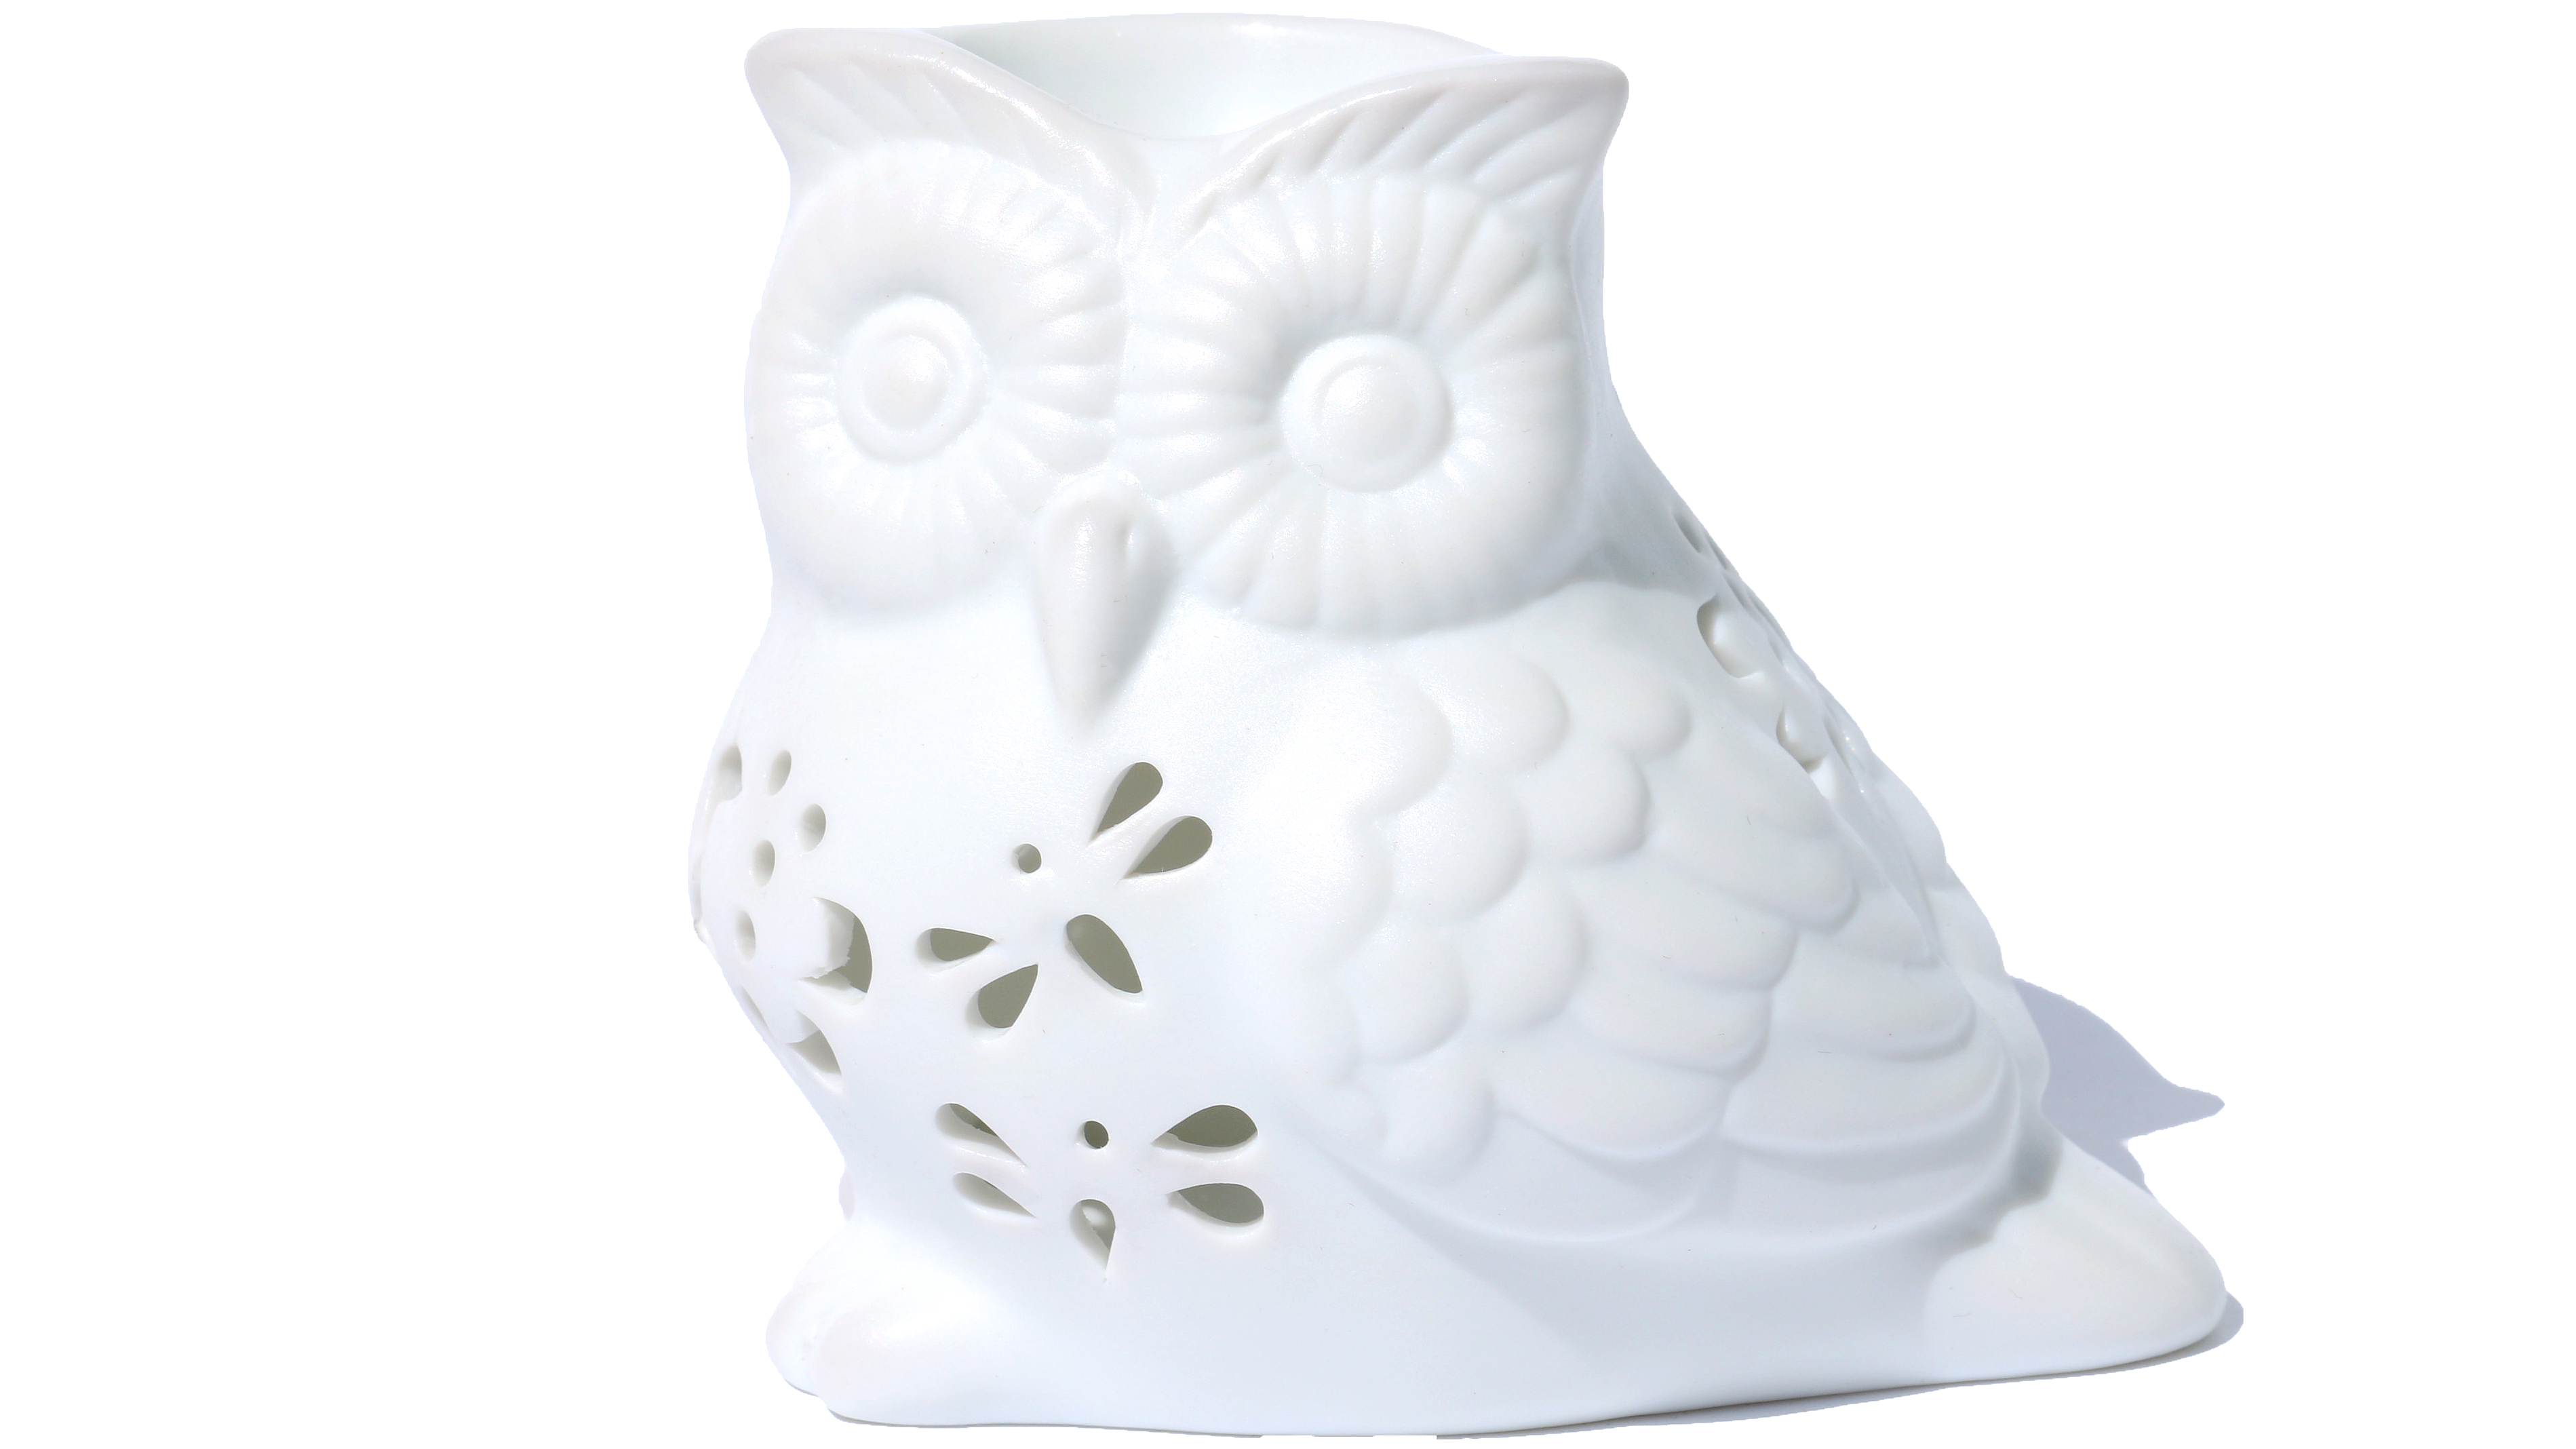 OSALADI Ceramic Owl Candle Holders Owl Tealight Cup Decorative Candlestand Table Ornament for Anniversiry Wedding Home Party Golden, Covering Mouth